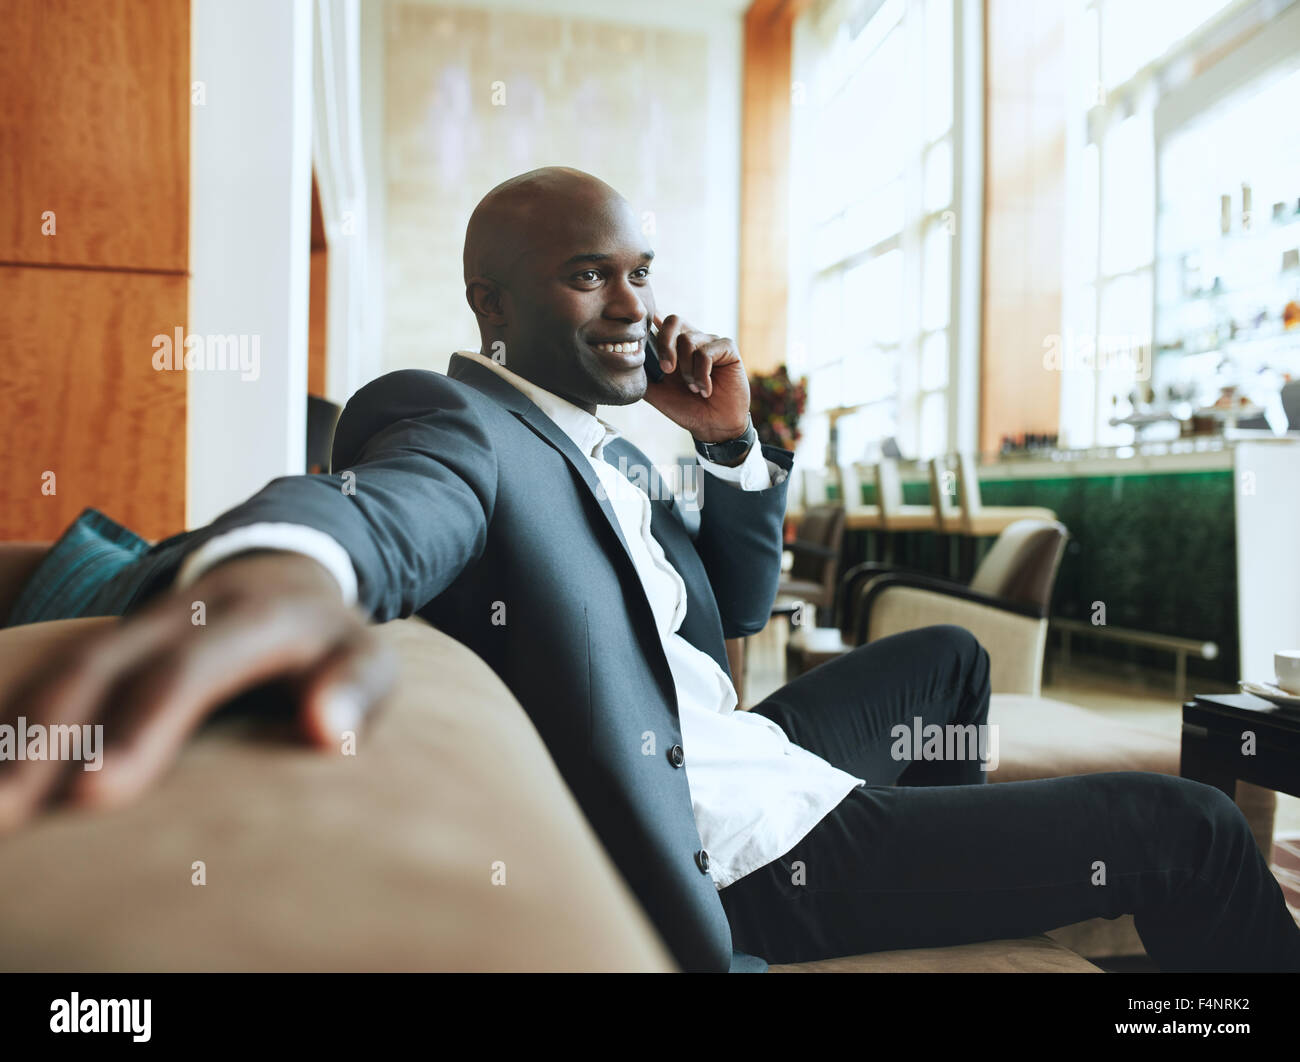 Happy young businessman sitting relaxed on sofa at hotel lobby making a phone call, waiting for someone. - Stock Image